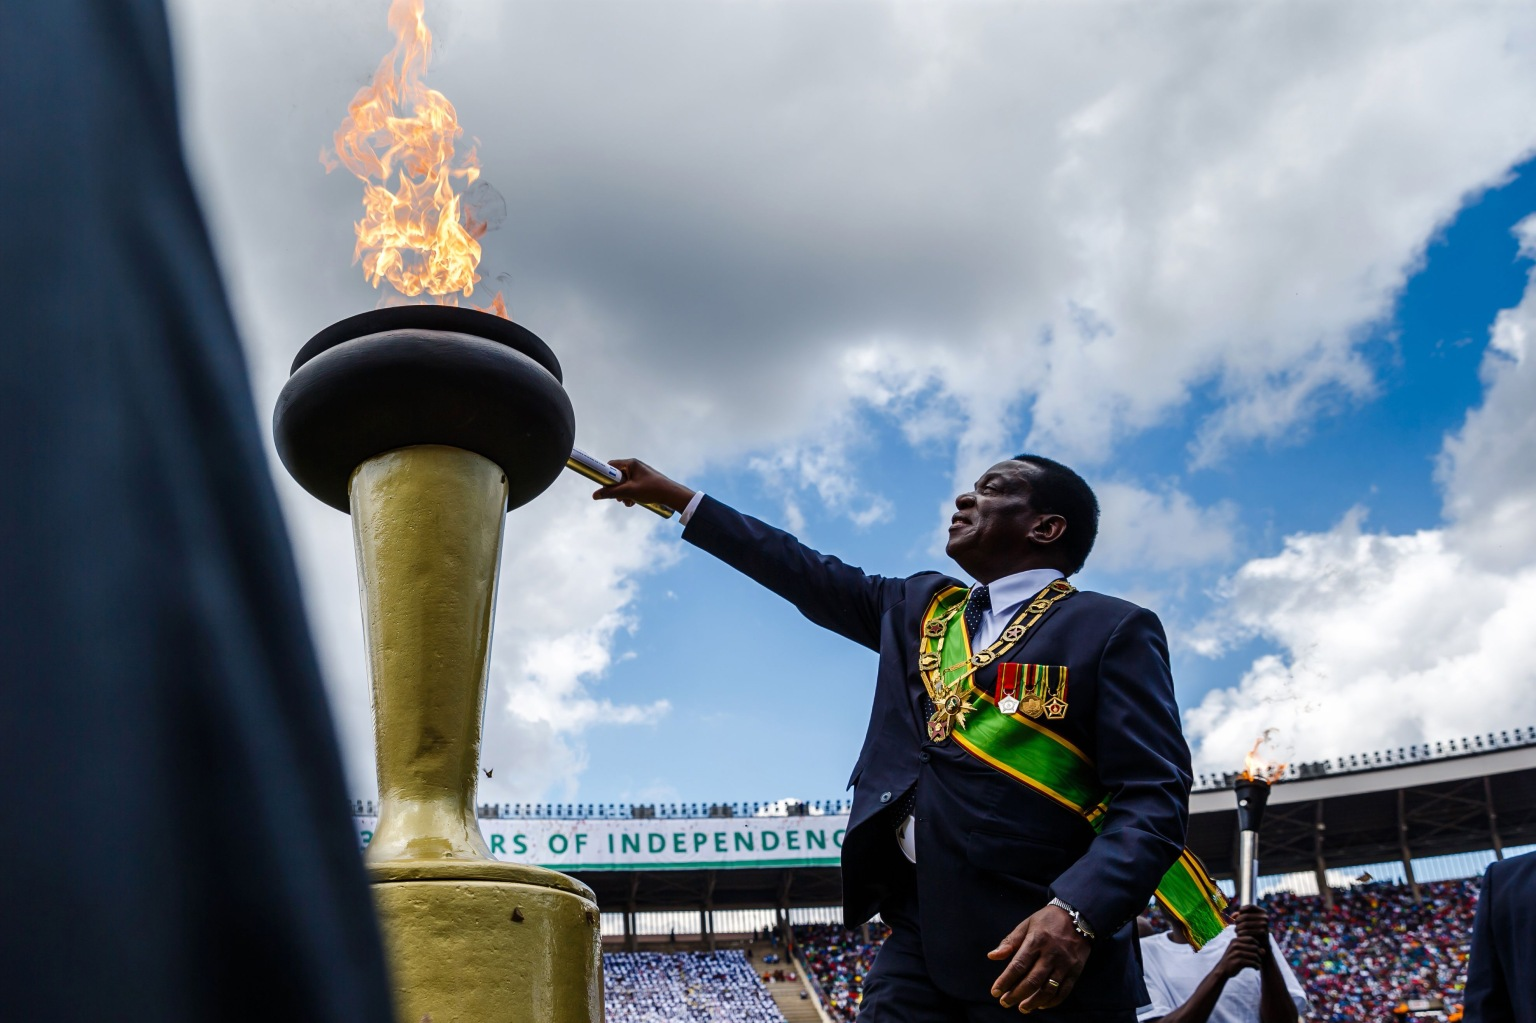 Zimbabwe President Emmerson Mnangagwa lights the Eternal Flame of Freedom during Independence Day celebrations at the on April 18 in Harare. Zimbabwe marked its first independence day since 1980 without Robert Mugabe in power, as Mnangagwa vowed to hold credible elections and turn around the southern African nation's troubled economy. JEKESAI NJIKIZANA/AFP/Getty Images